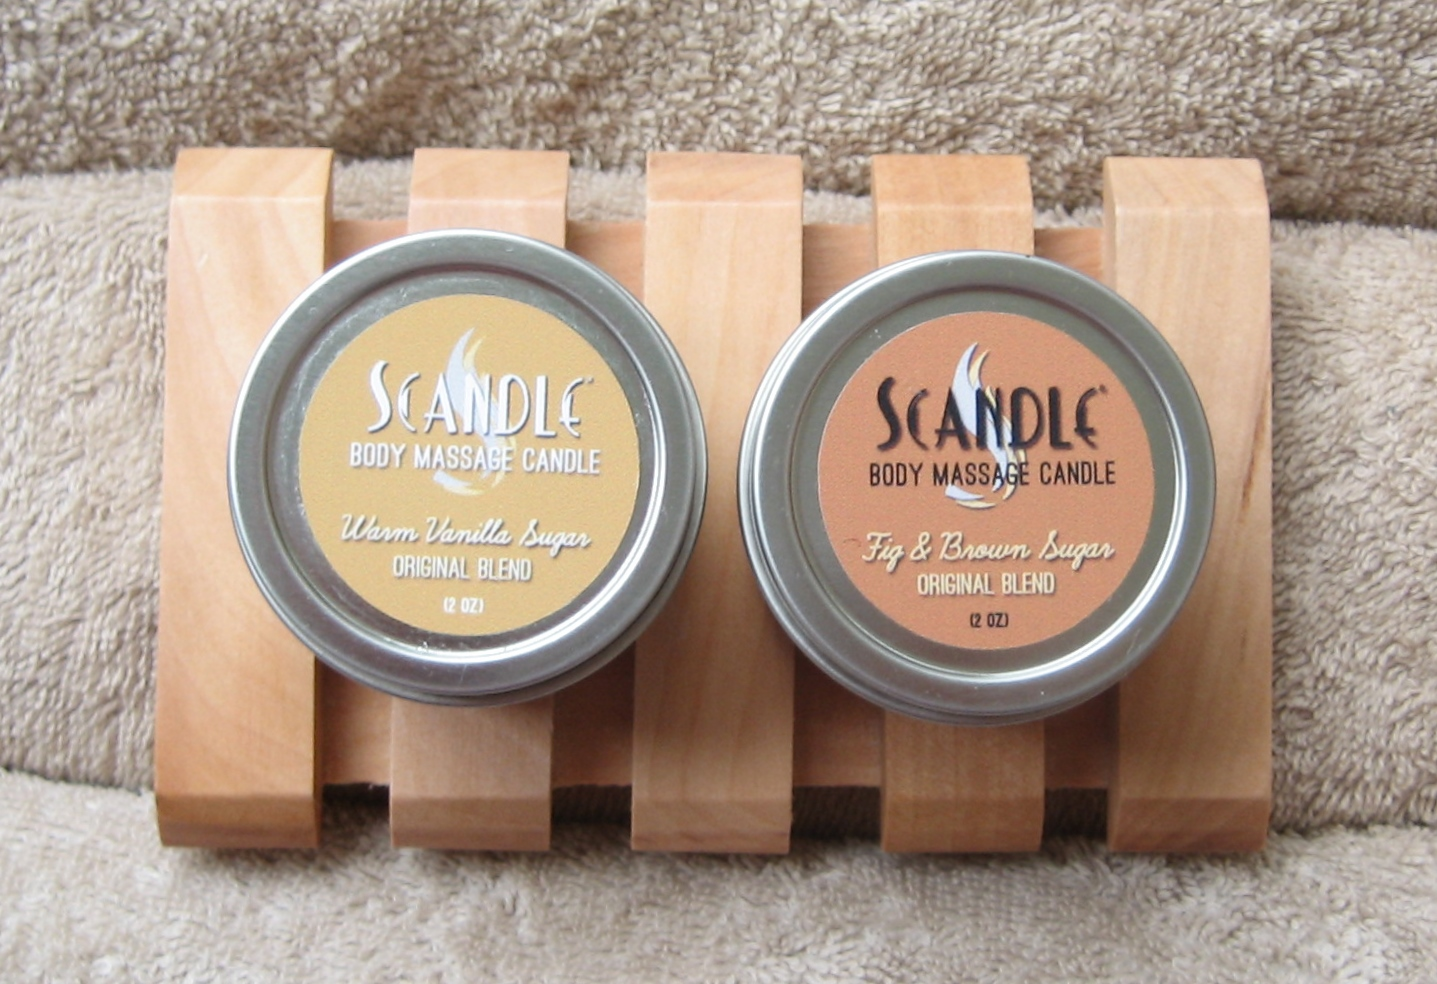 Scandle Body massage Candles